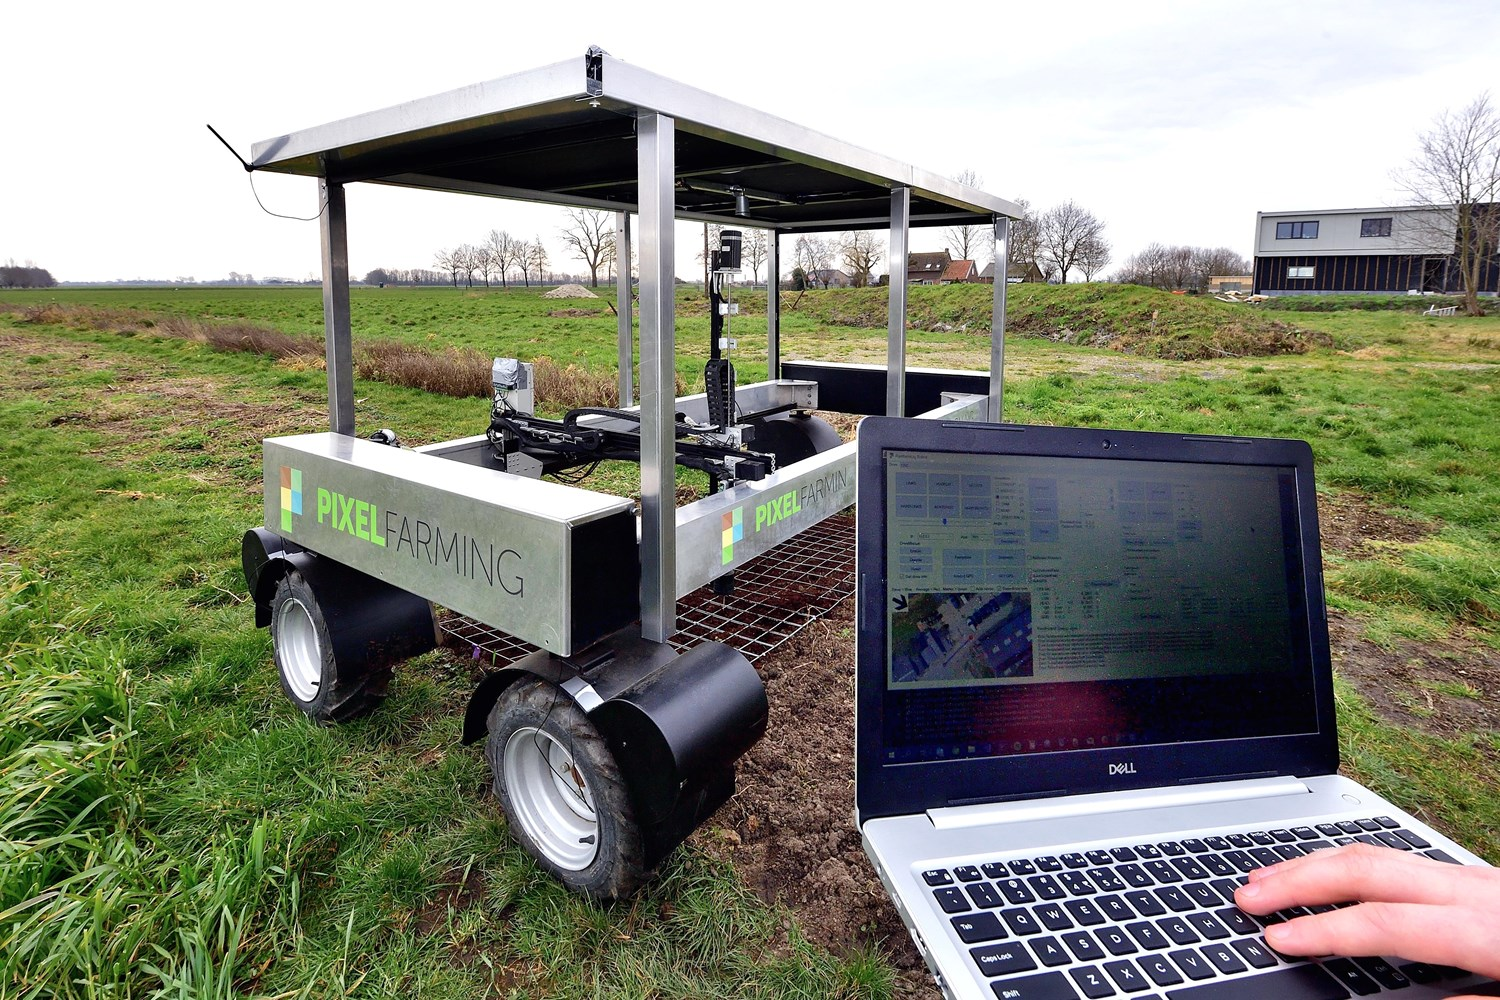 Pixelfarming, digital farming in Brabant